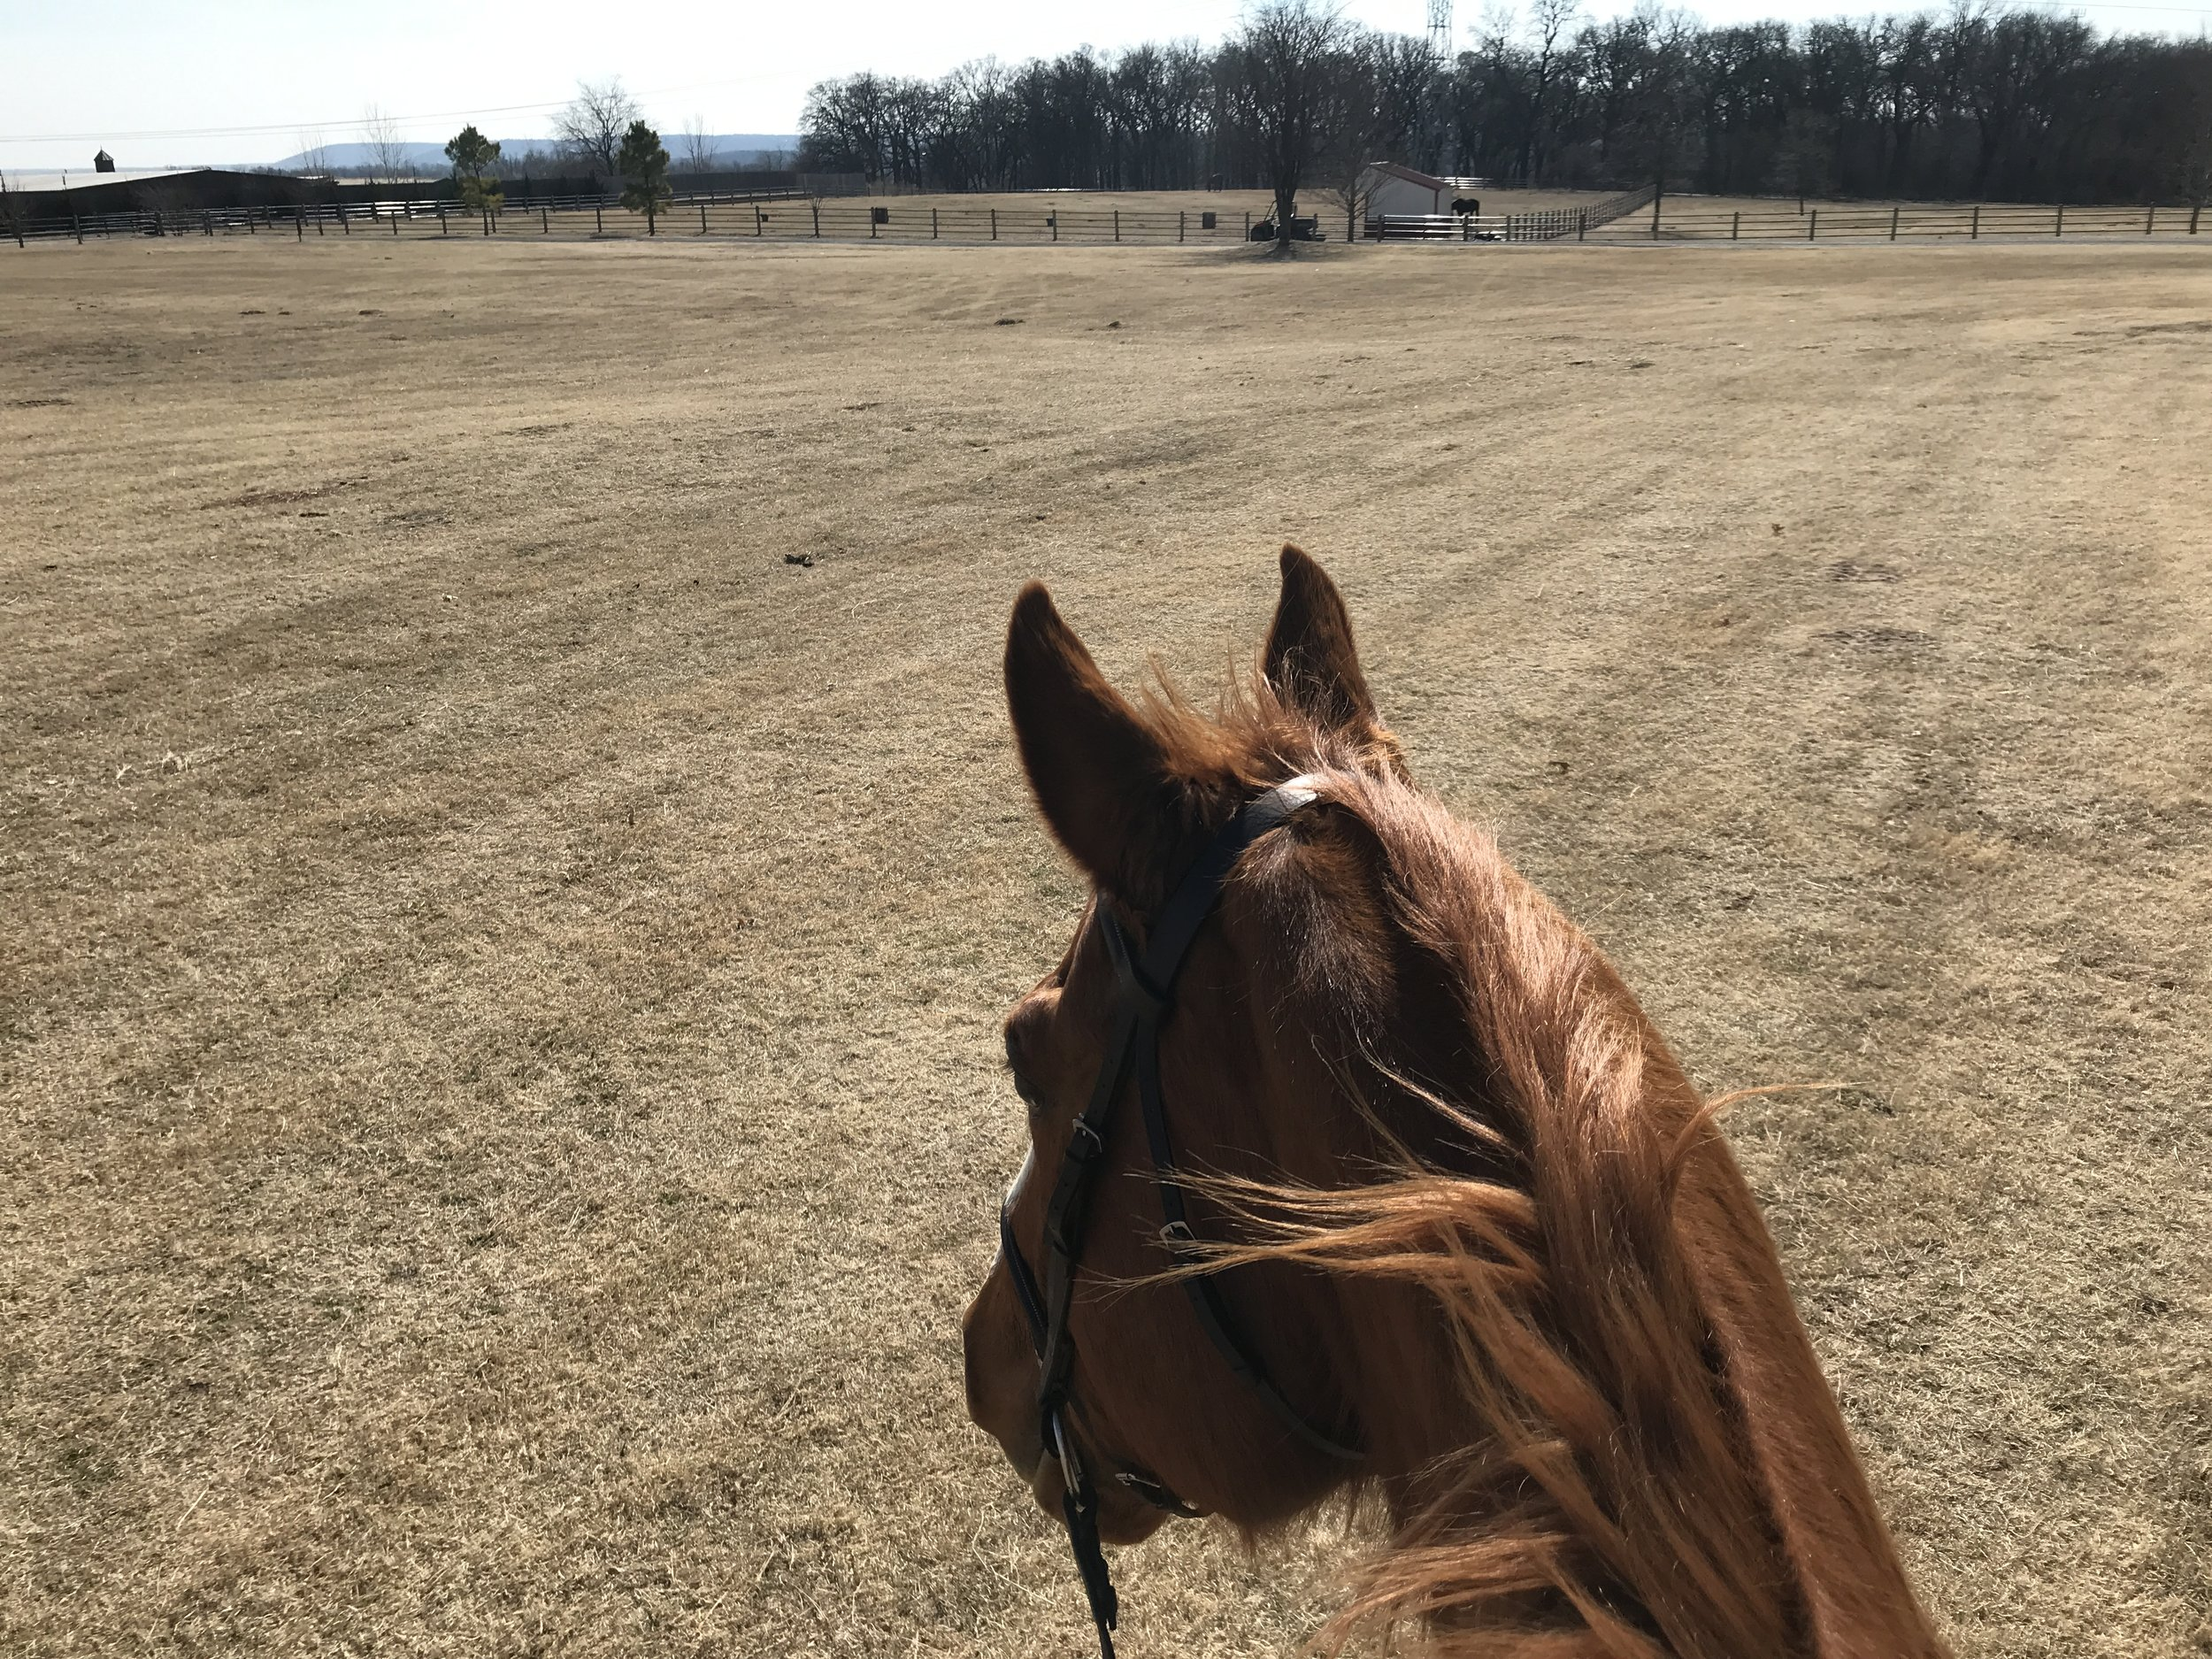 My happy place - where I go for some stress relief.